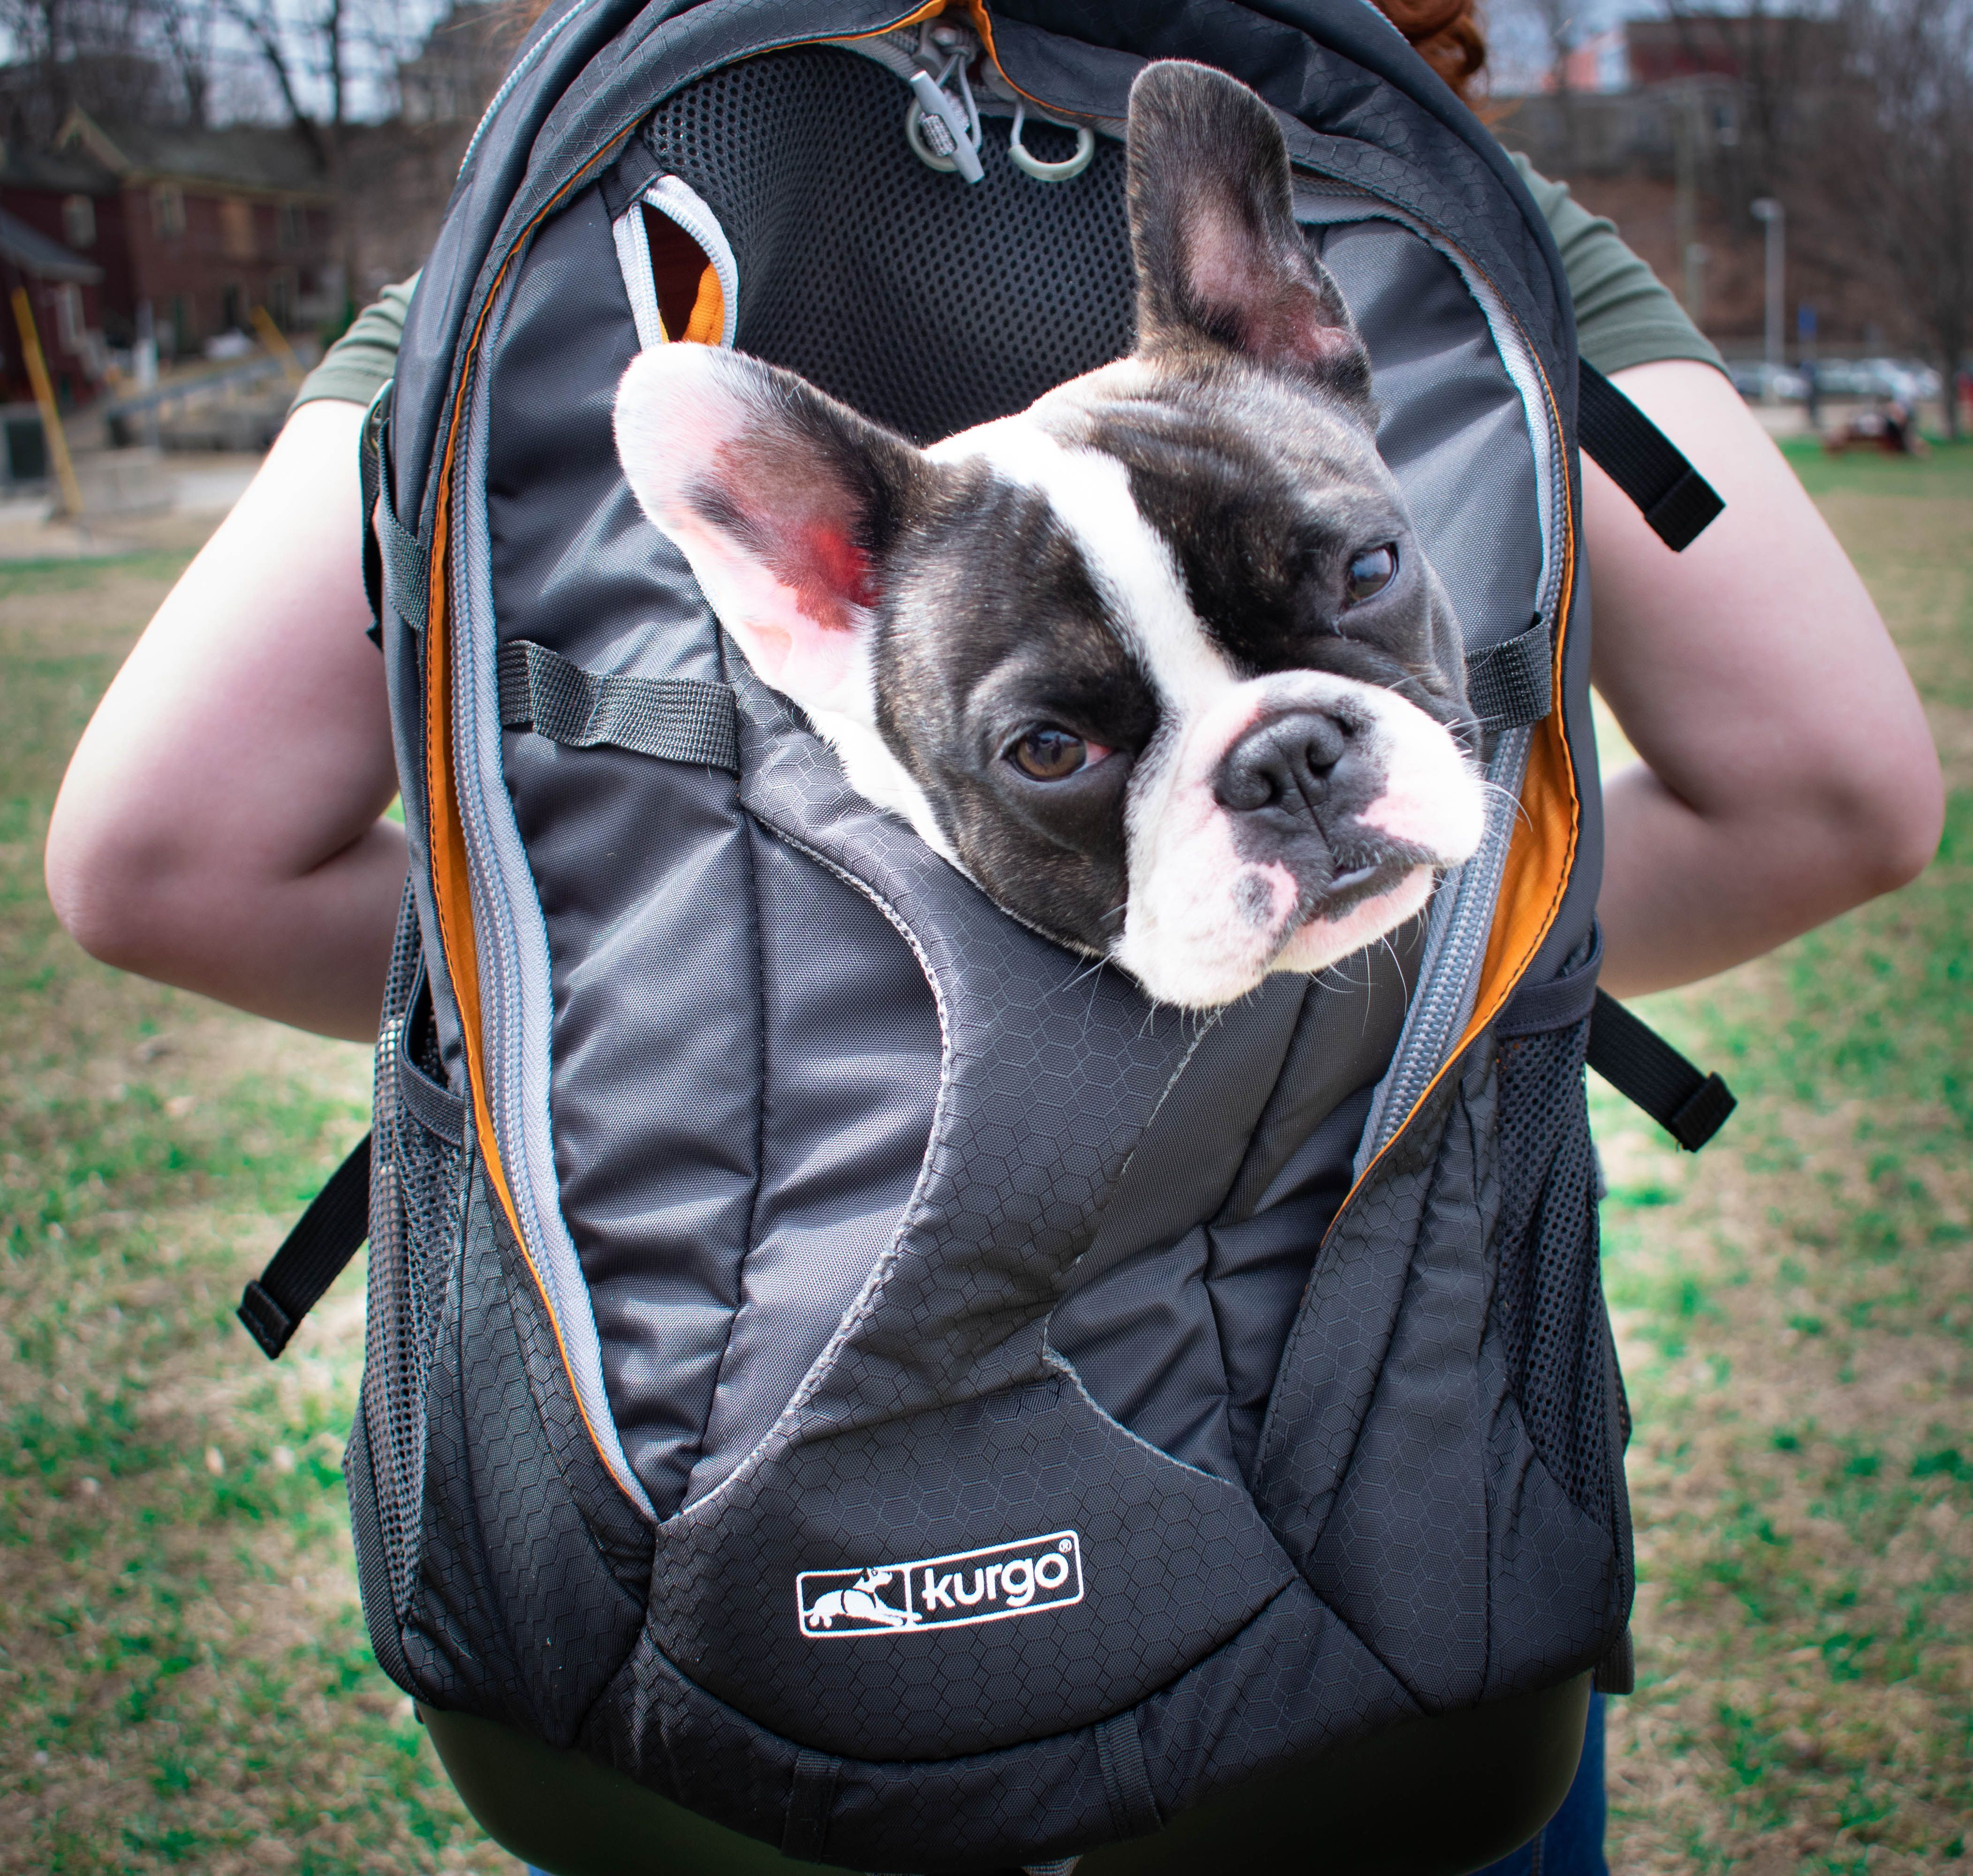 Ready Set Prime Amazon Prime Day Starts At 3am Est On Monday June 15th Stock Up On Kurgo Gear While The Sales L Hiking Dogs Dog Travel Training Your Dog